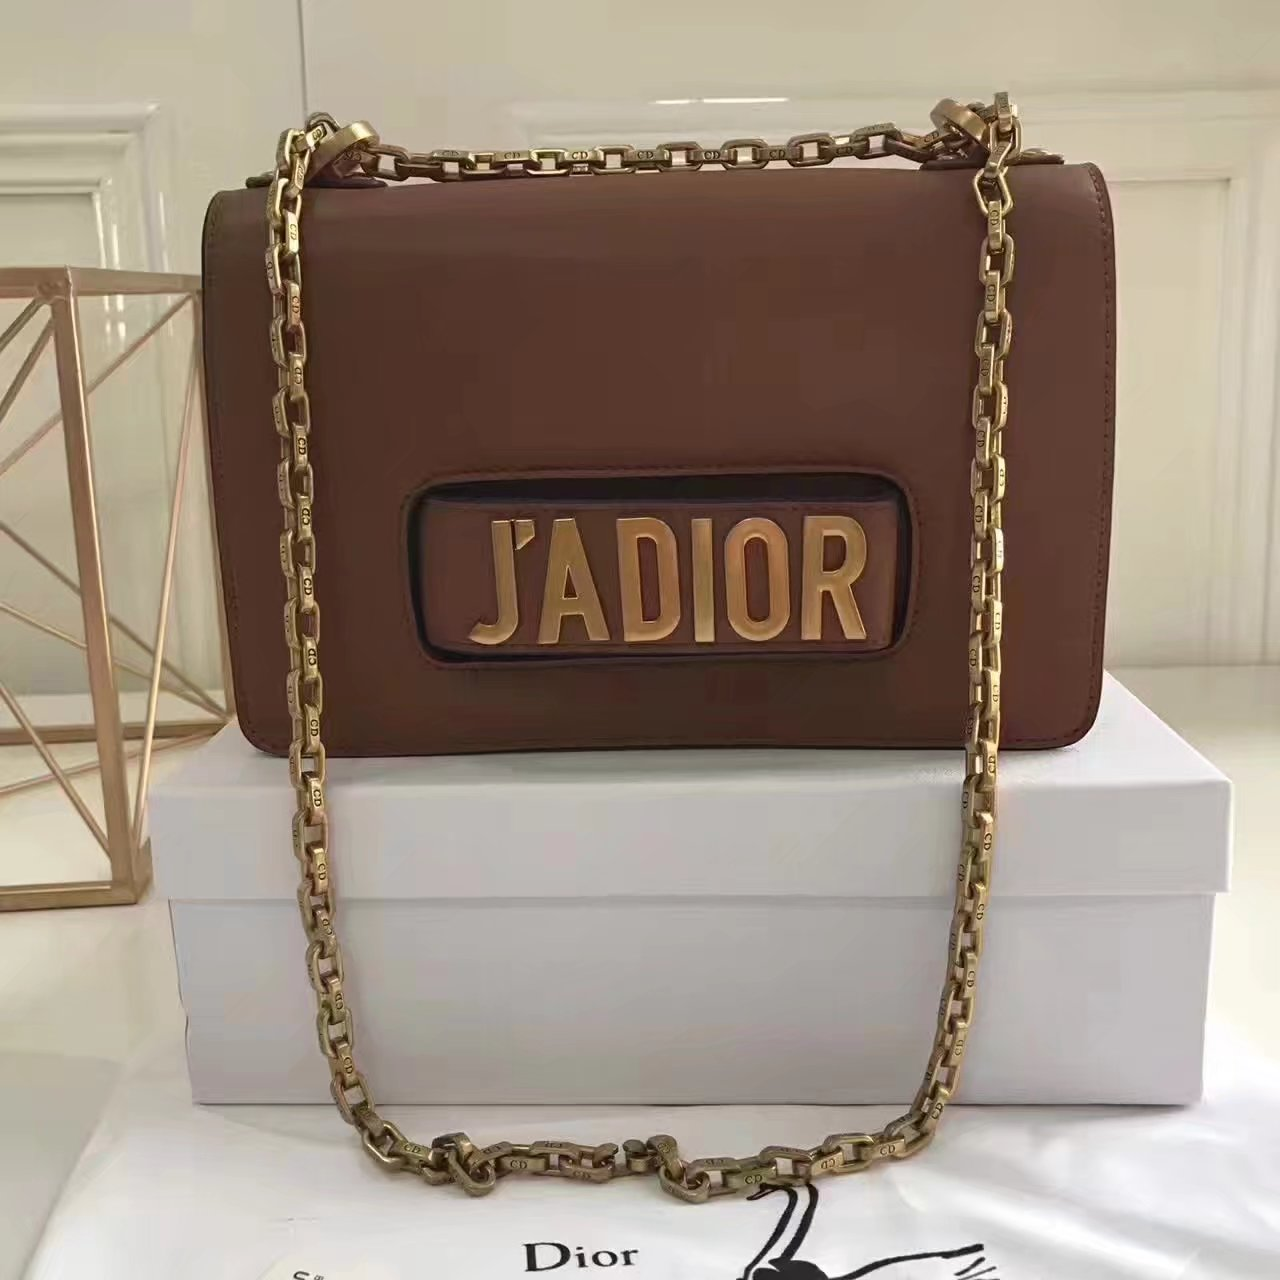 Original Dior J'ADIOR Flap Bags With Chain in Coffee